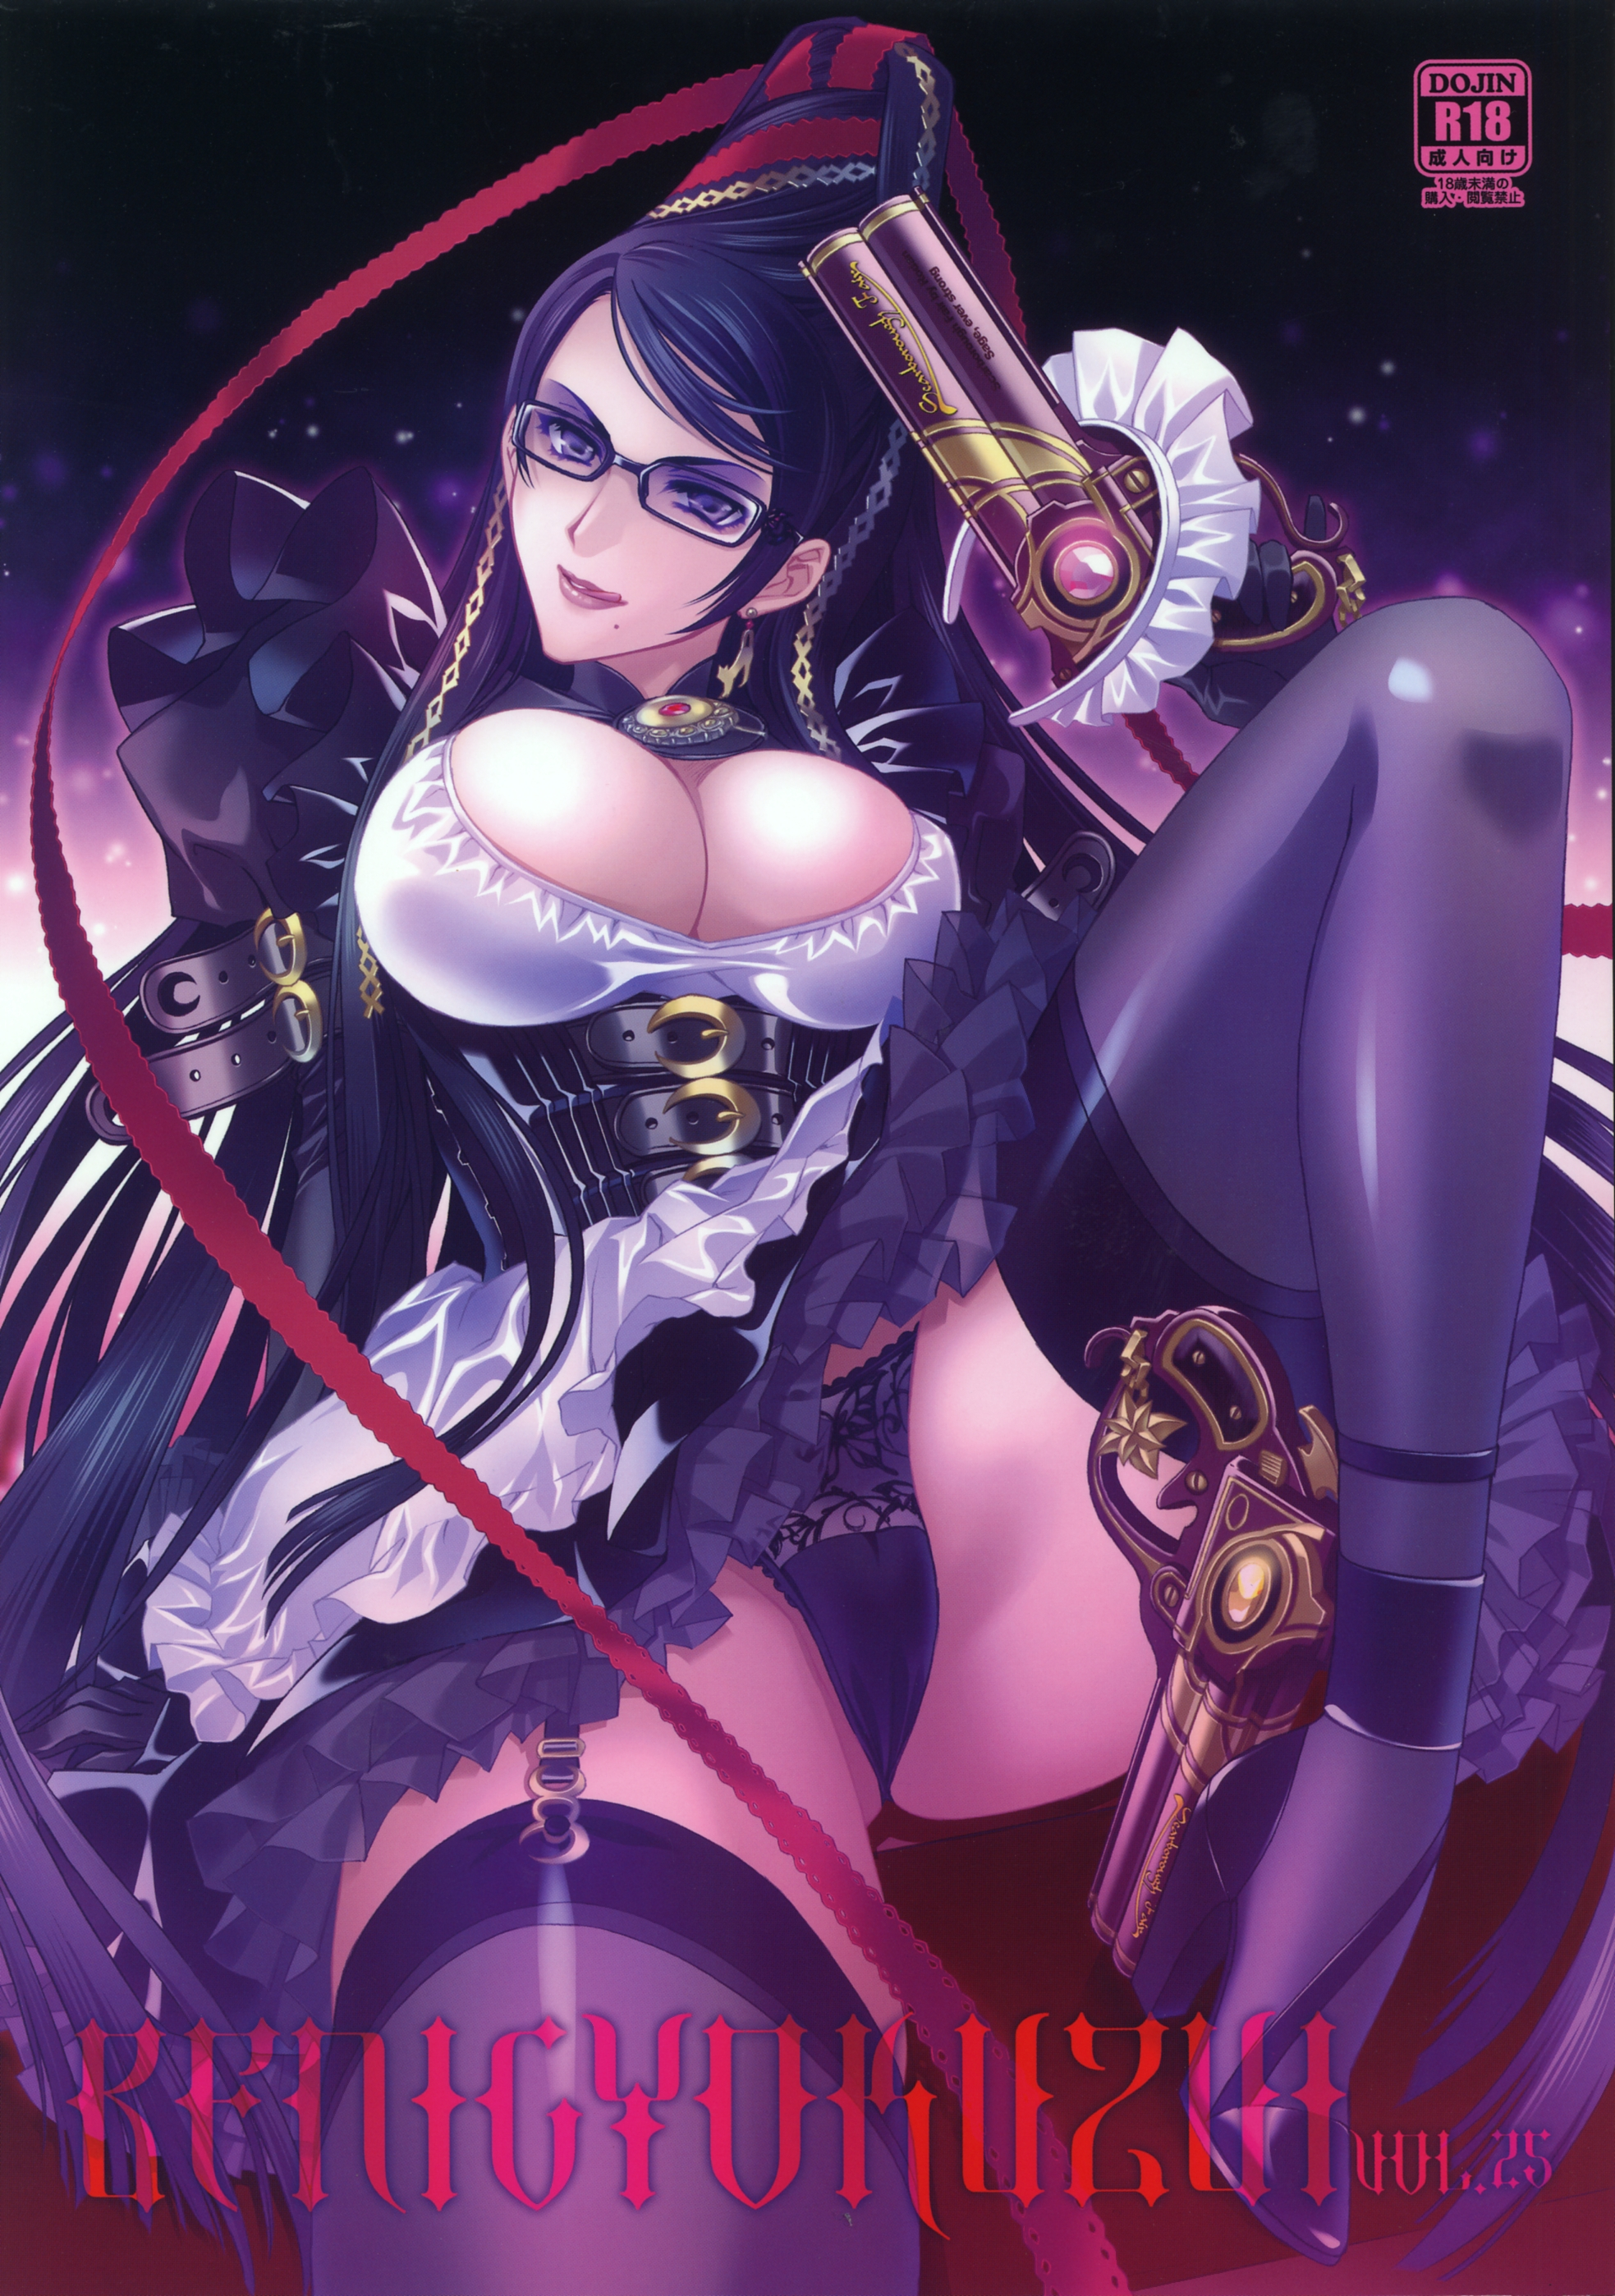 Bayonetta nude wallpapers porn tube